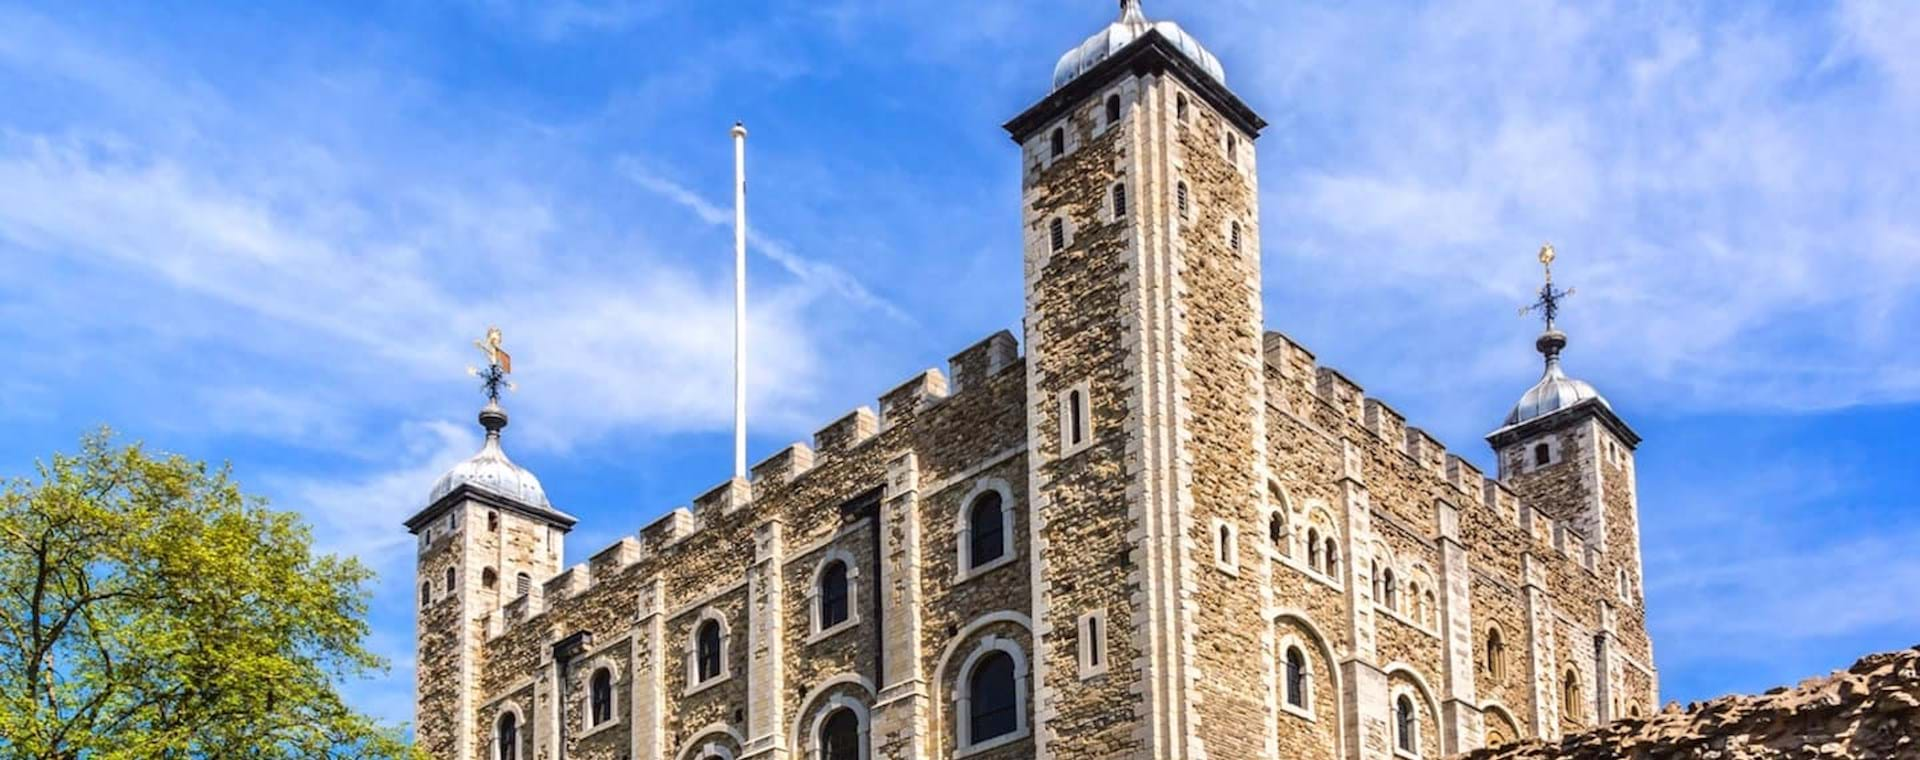 Interactive Tower of London Tour & River Thames Cruise for Families